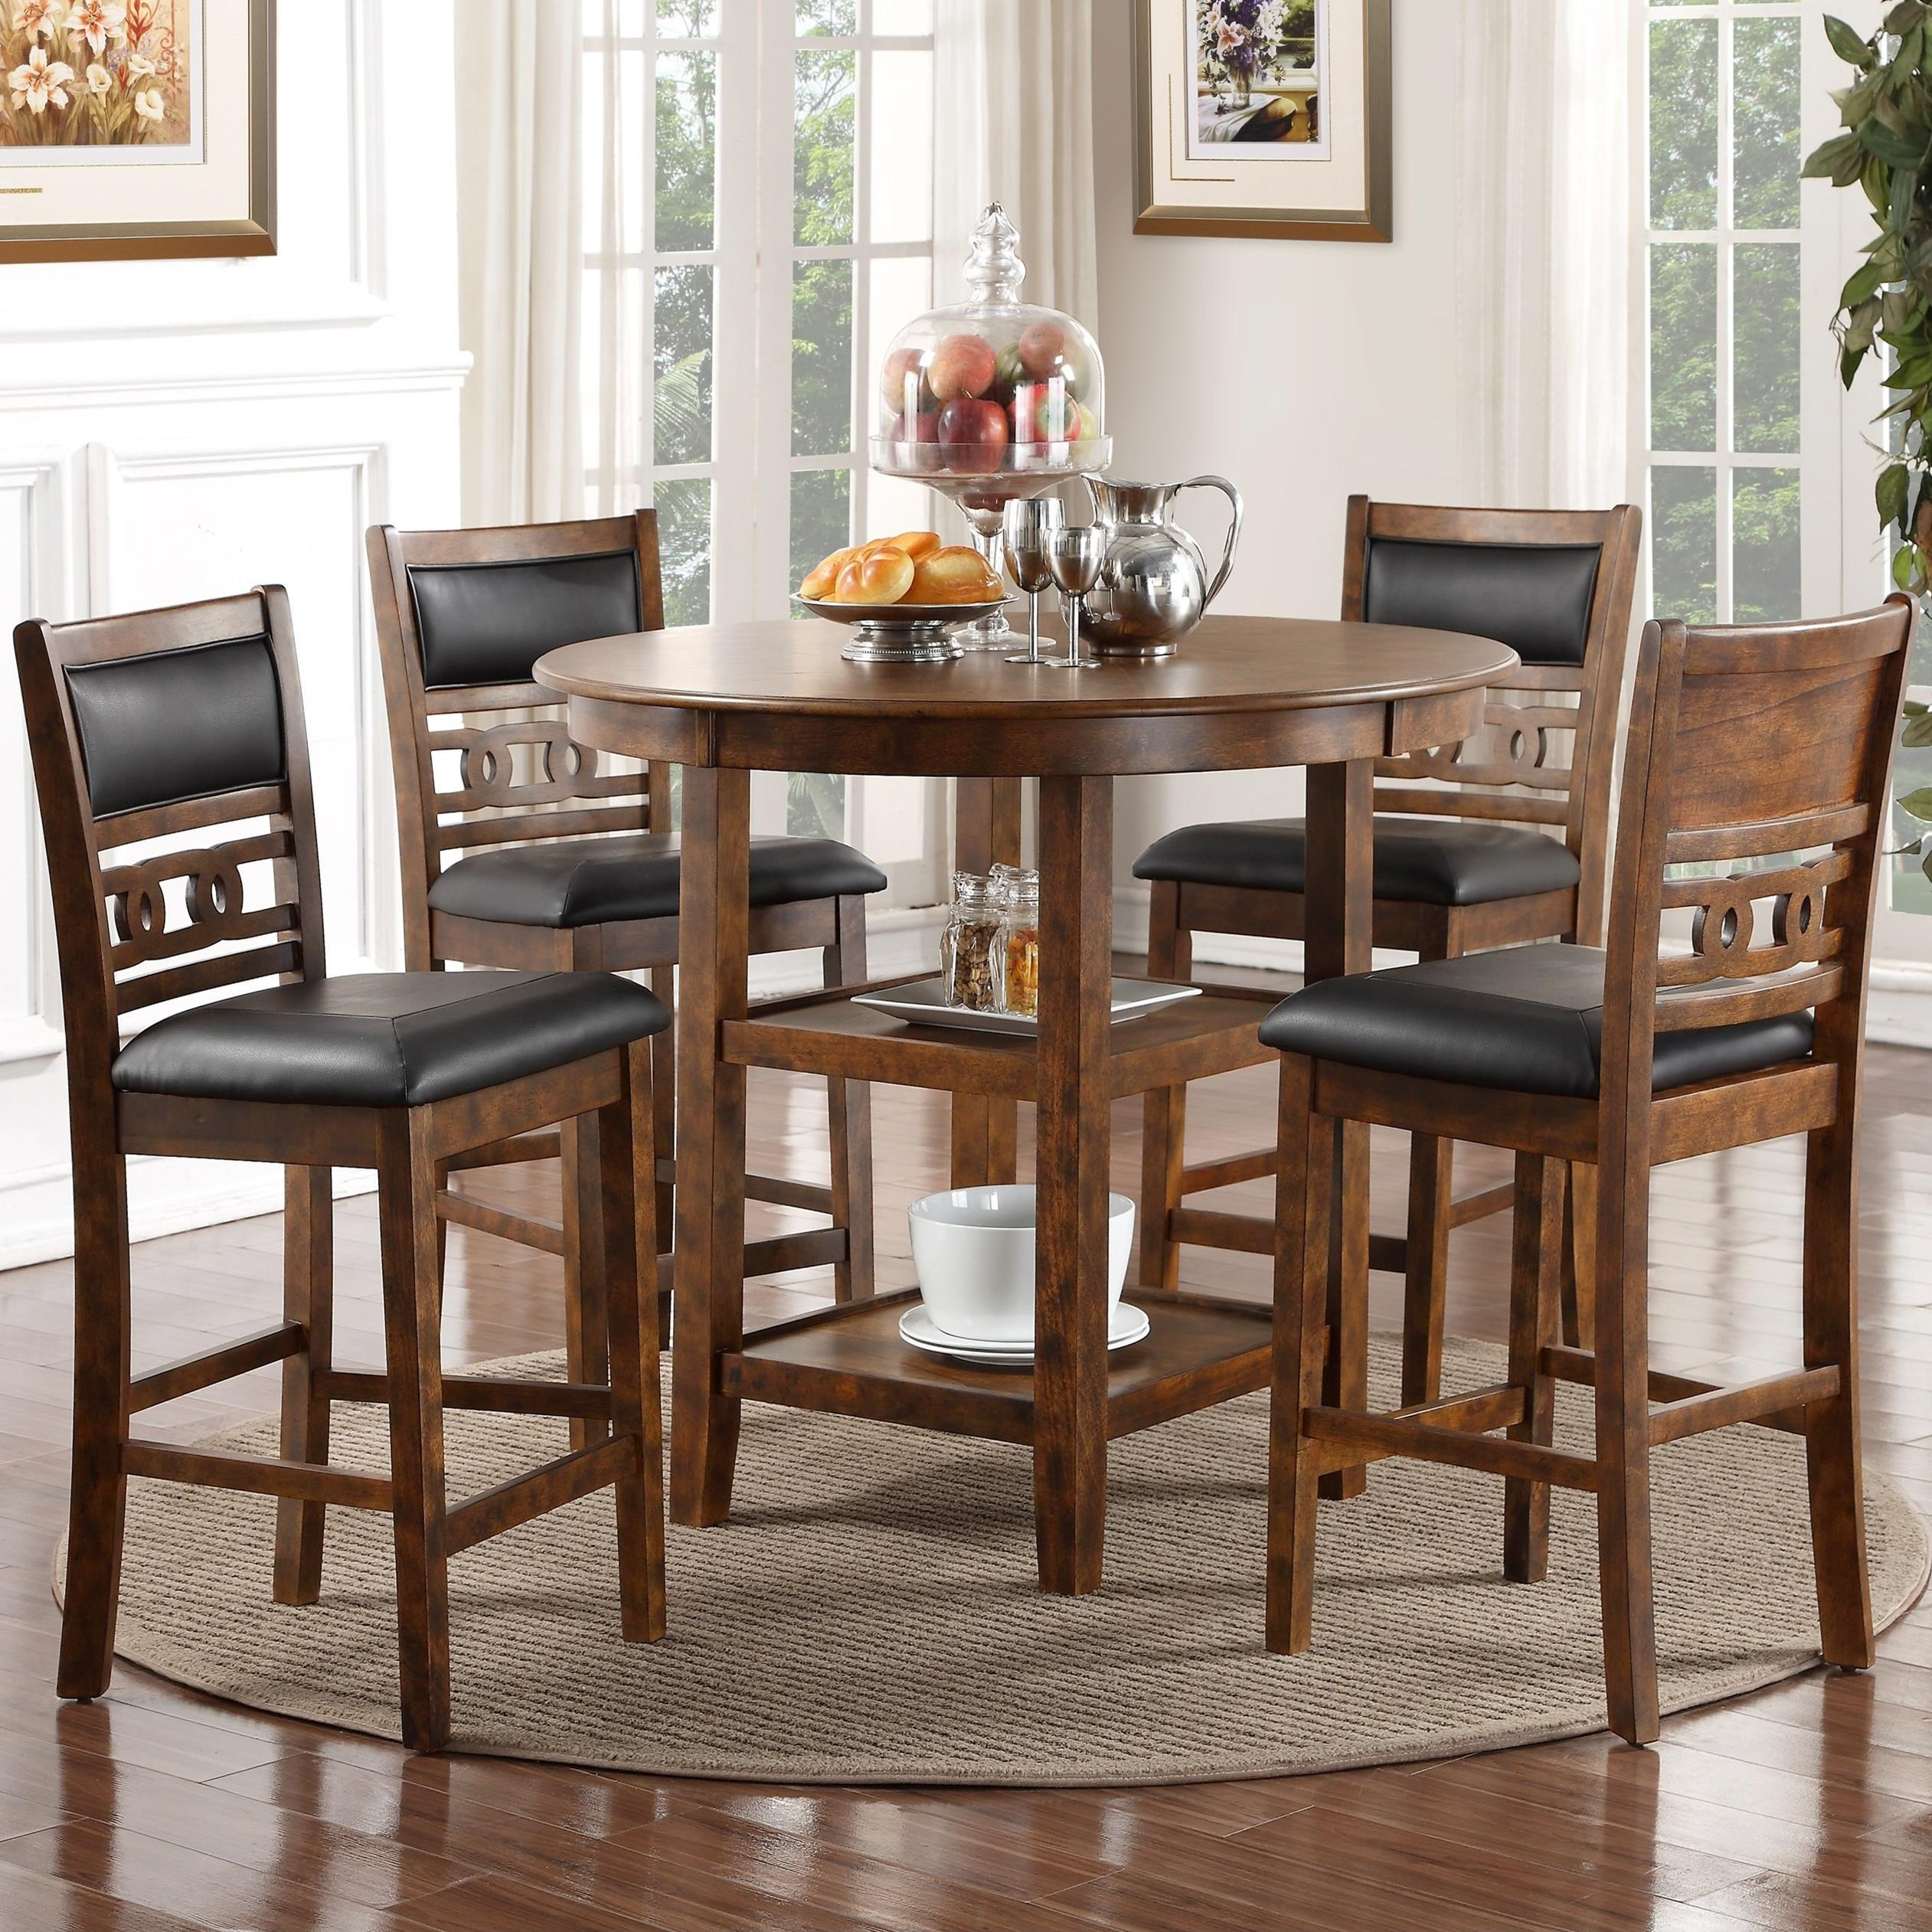 Low dining room tables